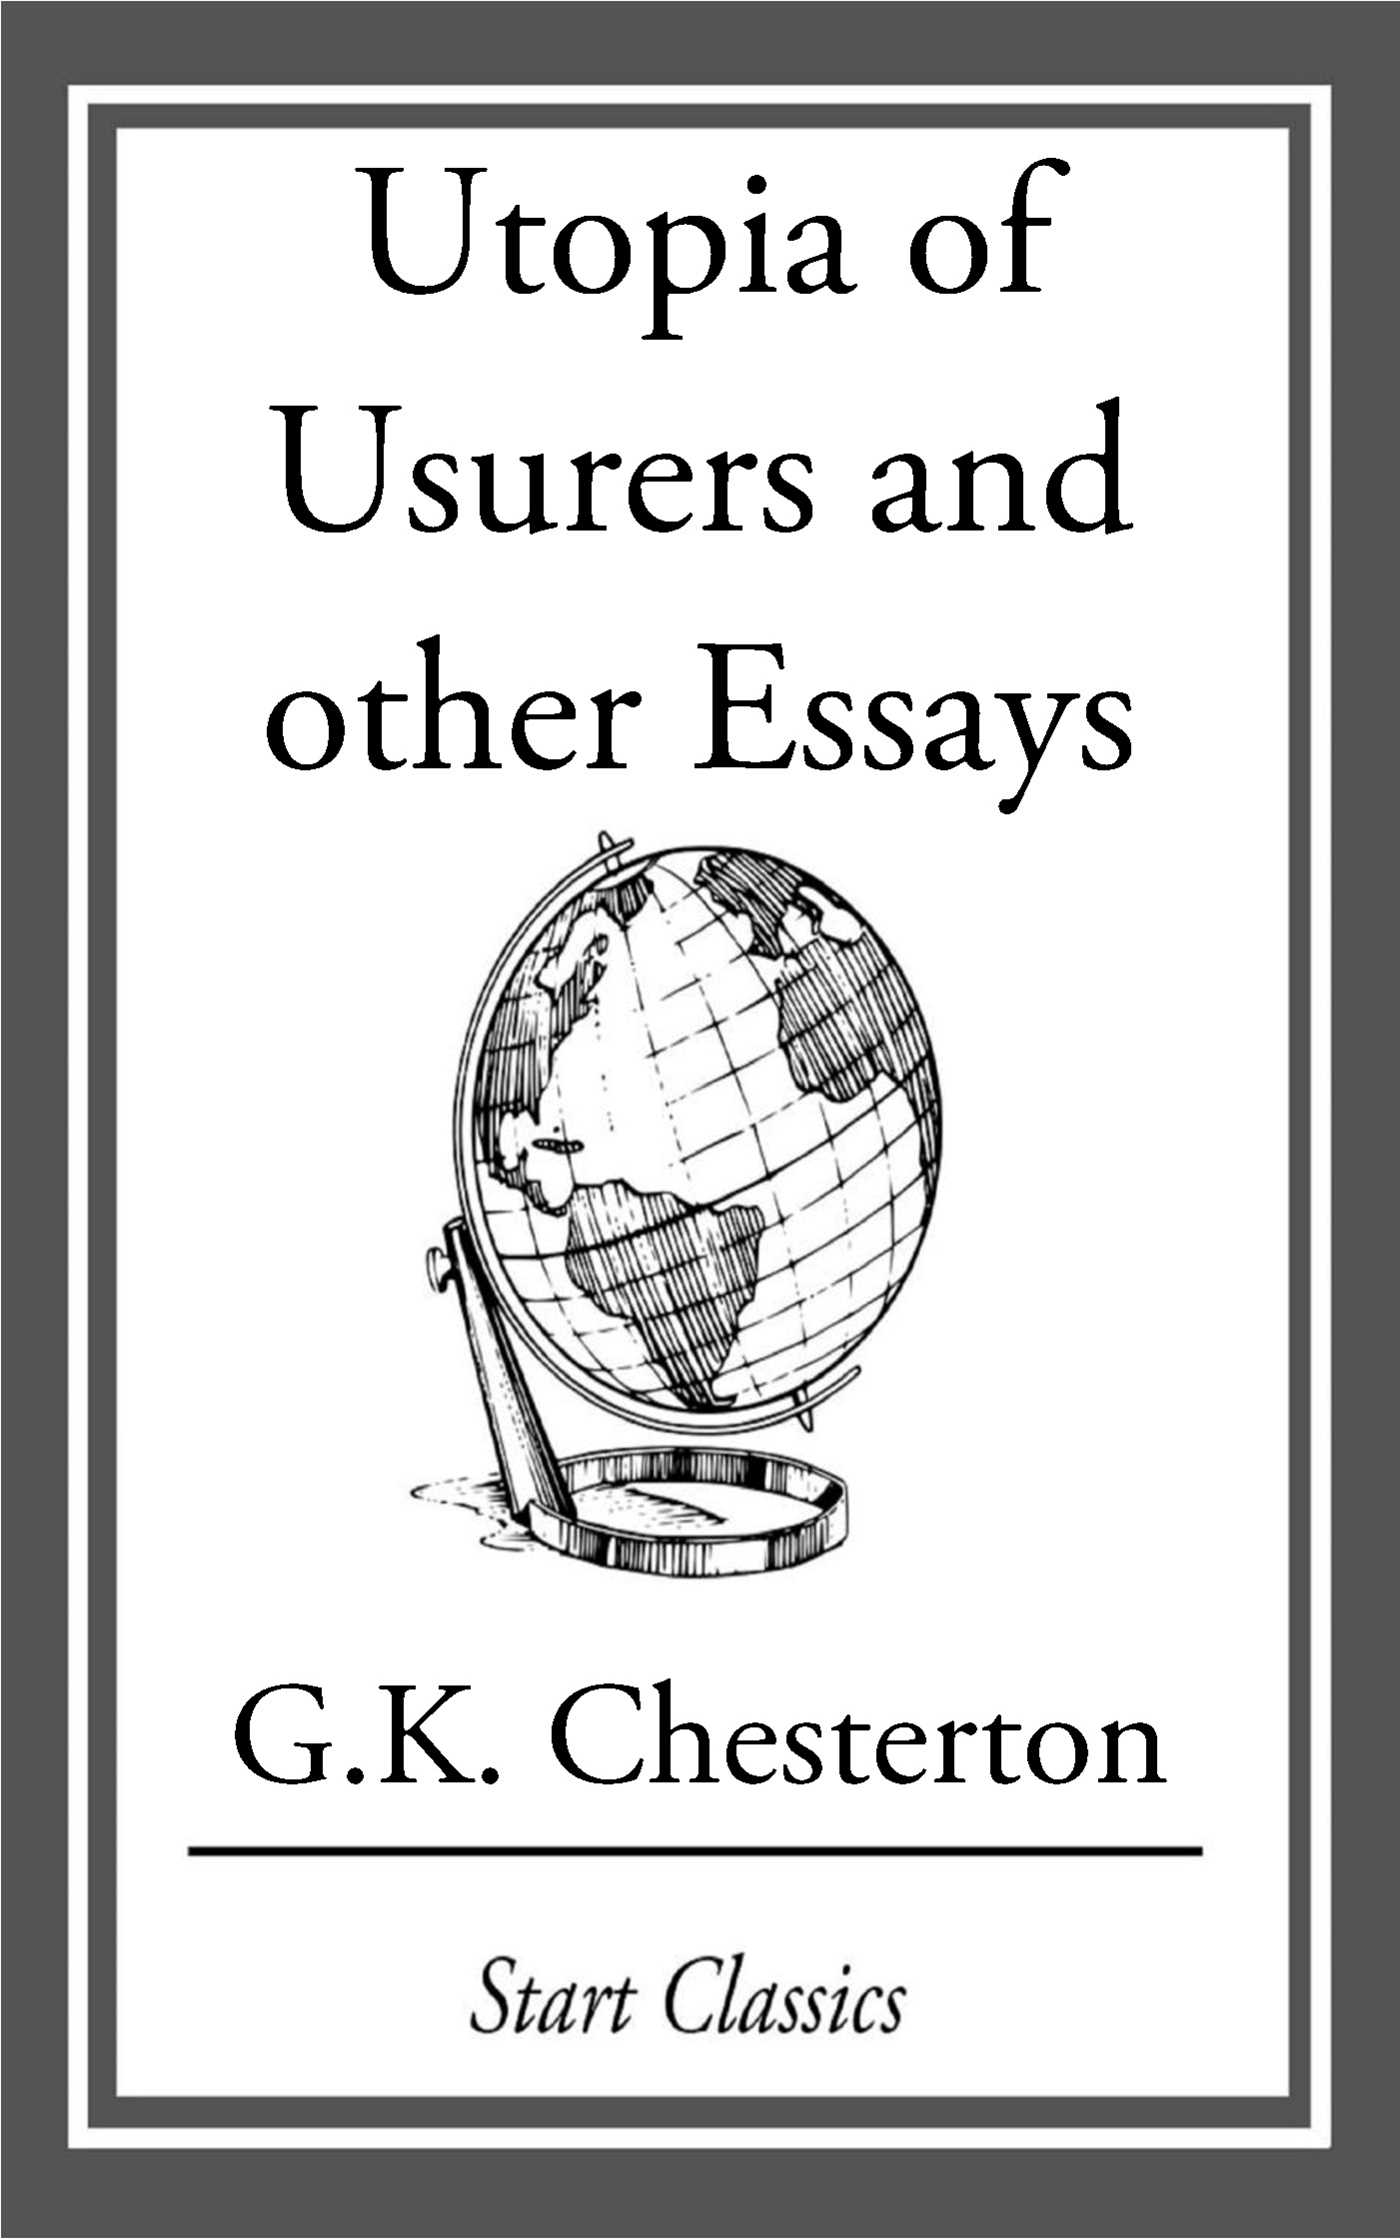 023 Essay Example Utopia Dystopia Usurers And Other Essays On By Thomas More Utopian Socialism Anarchy State Persuasive Mores Frightening Introduction Questions Society Conclusion Full